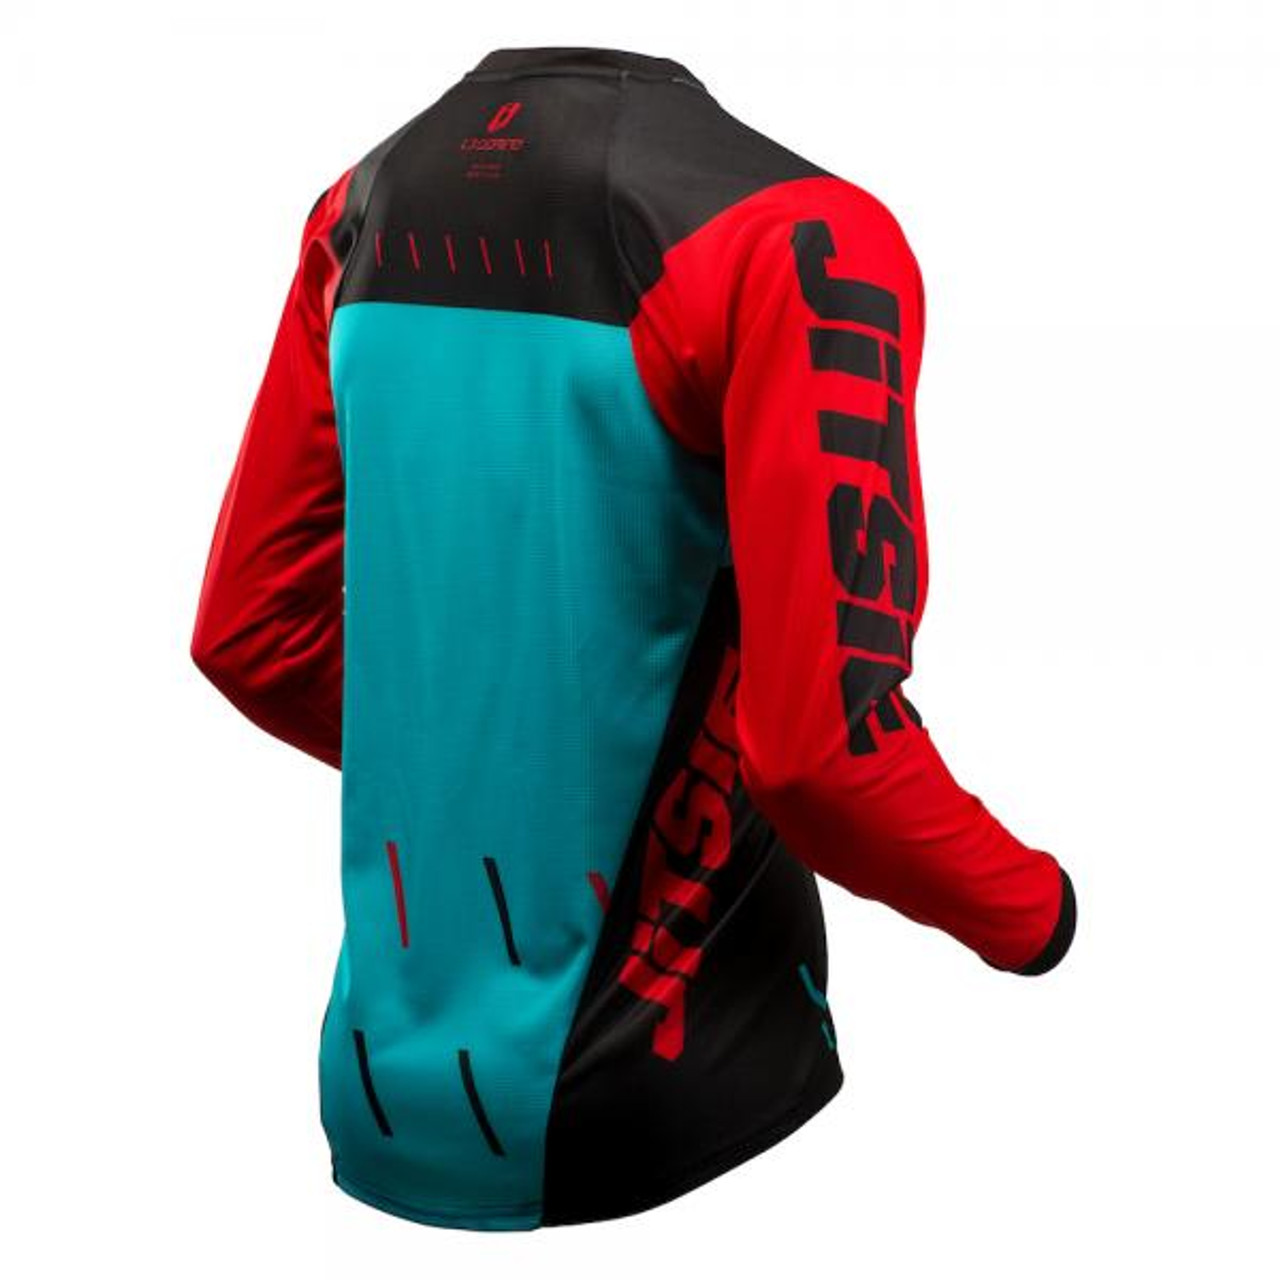 Jersey L3 Domino, black/red/ teal